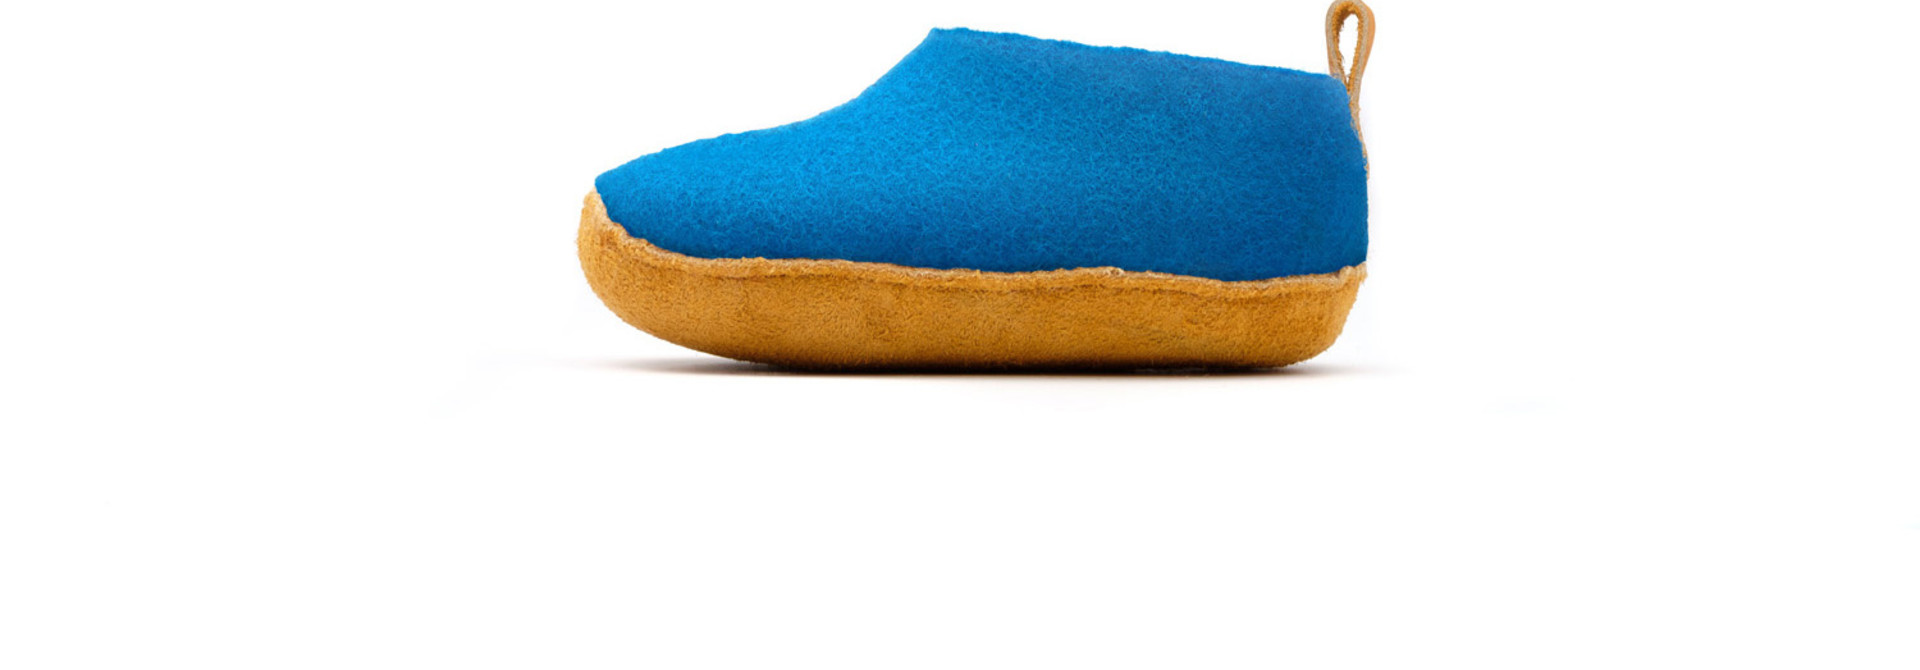 Nauseni Junior Slipper - Blue - Sz 24